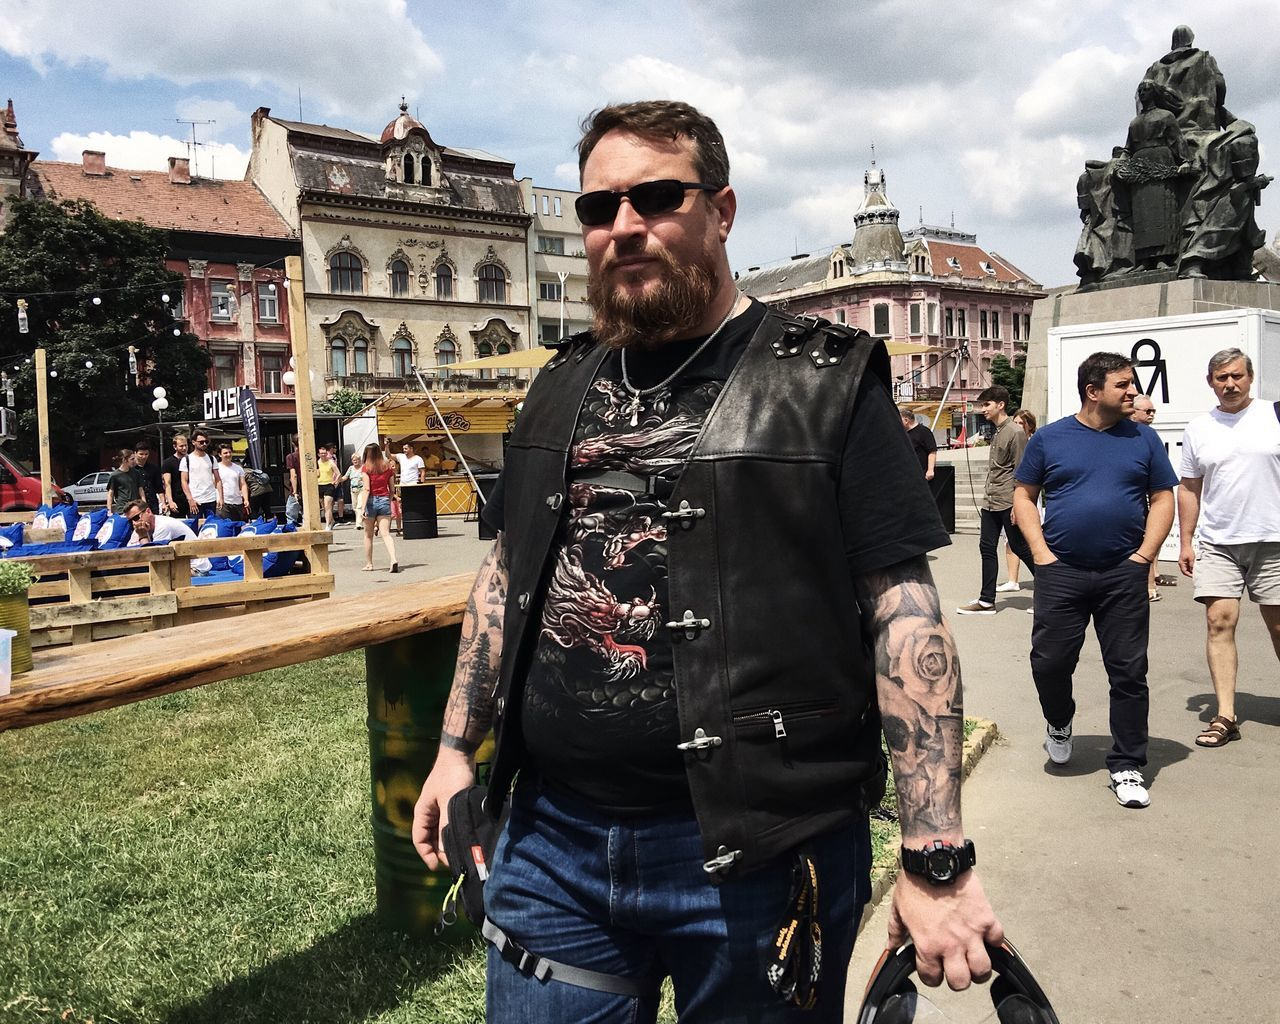 Rocksteady... Sunglasses Casual Clothing Architecture Cloud - Sky Outdoors Mature Adult Leisure Activity City Beard Details Of My Life Street Urban Made In Romania VSCO Lifestyles City Life Street Fashion Young Adult People Fashion Building Exterior Cool Summer Tattoos Tattooed